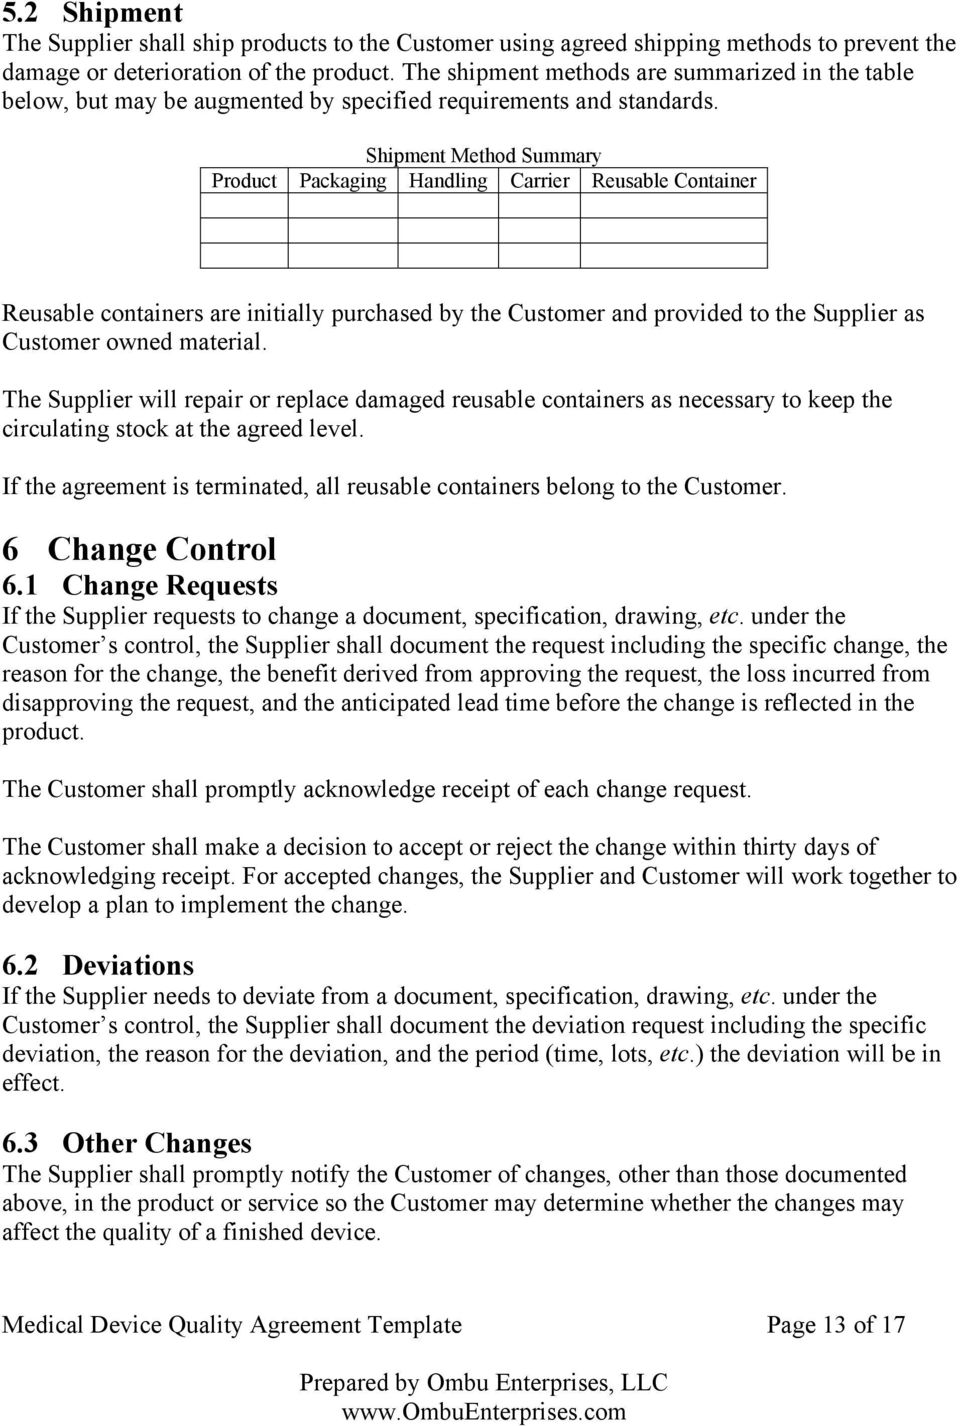 Medical Device Quality Agreement Template Pdf